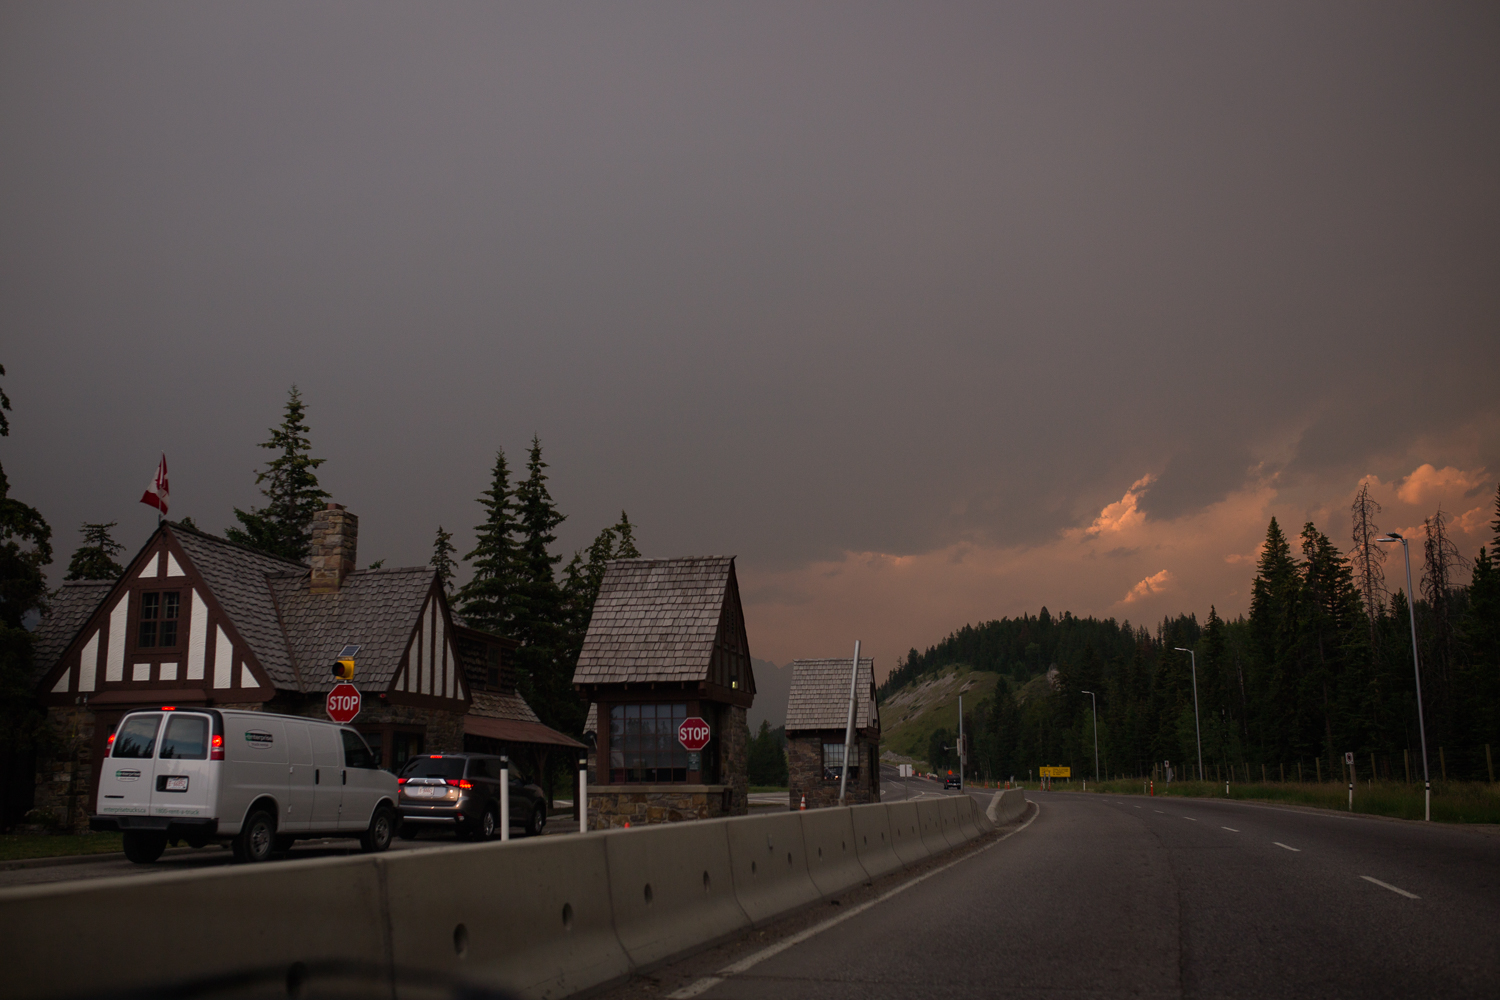 The whether was questionable arriving in Banff from Calgary our first evening, but cleared after a quick thunder storm. -